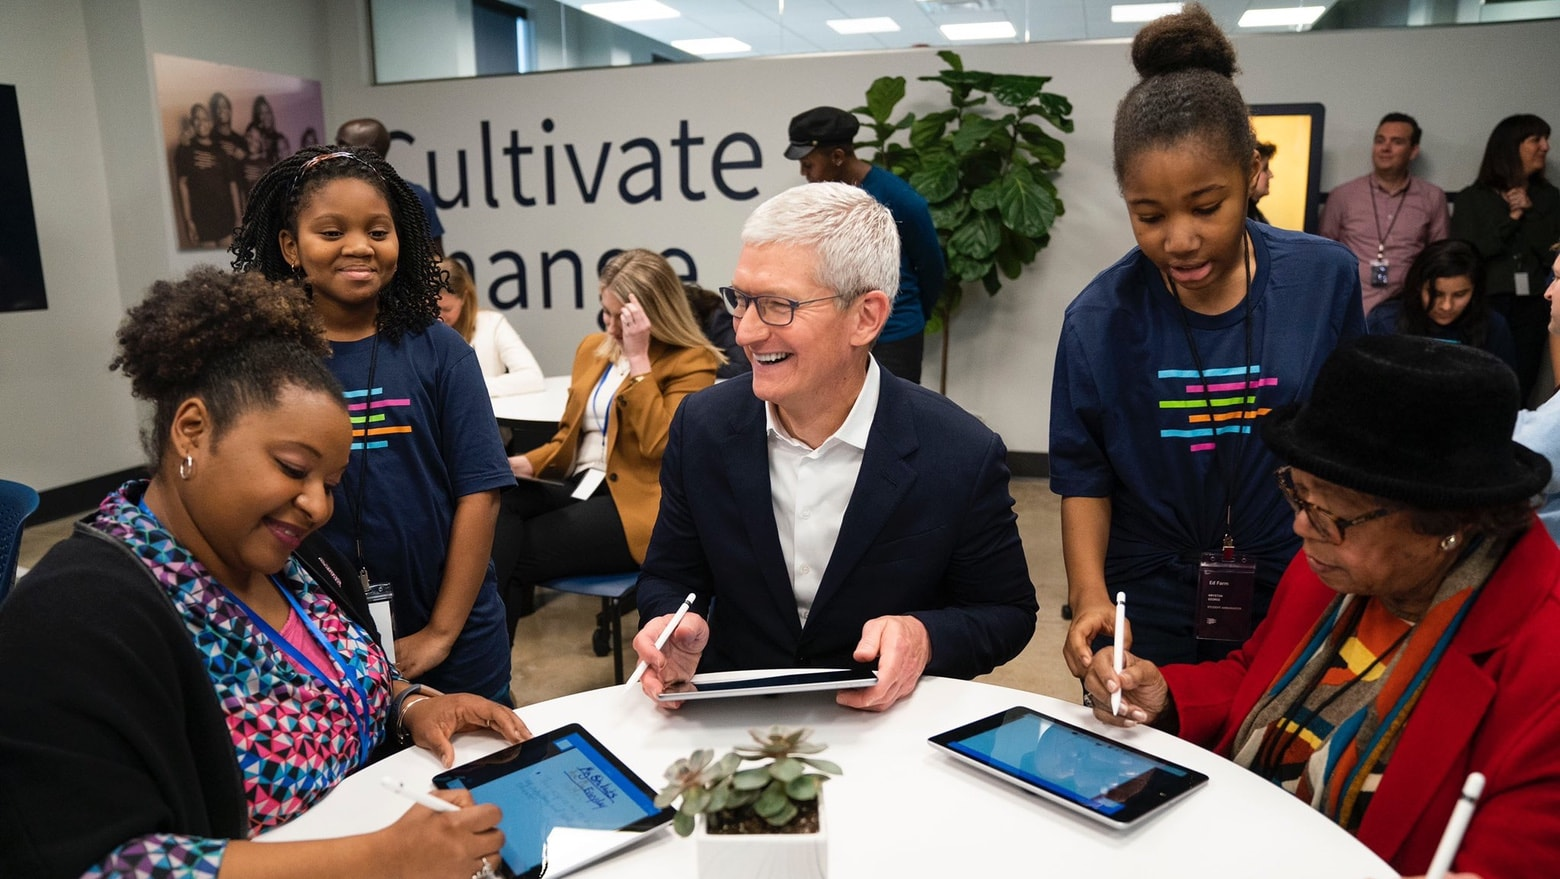 Apple CEO Tim Cook at the launch of Ed Farm in Birmingham.